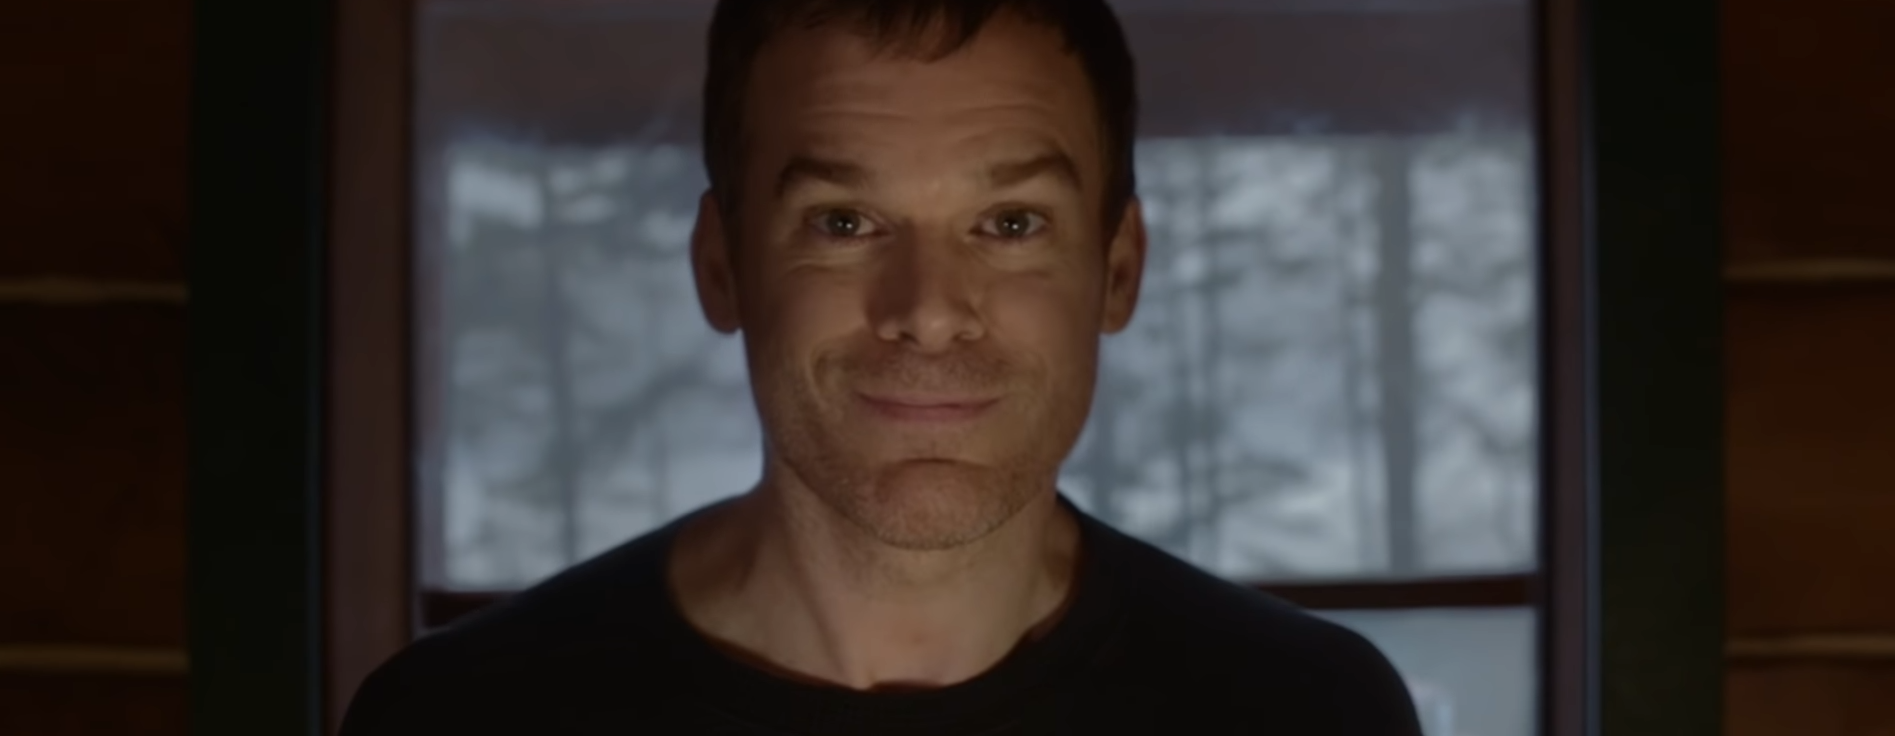 Dexter Morgan is Coming Out of Retirement in Showtime's First Teaser for 'Dexter' Season 9